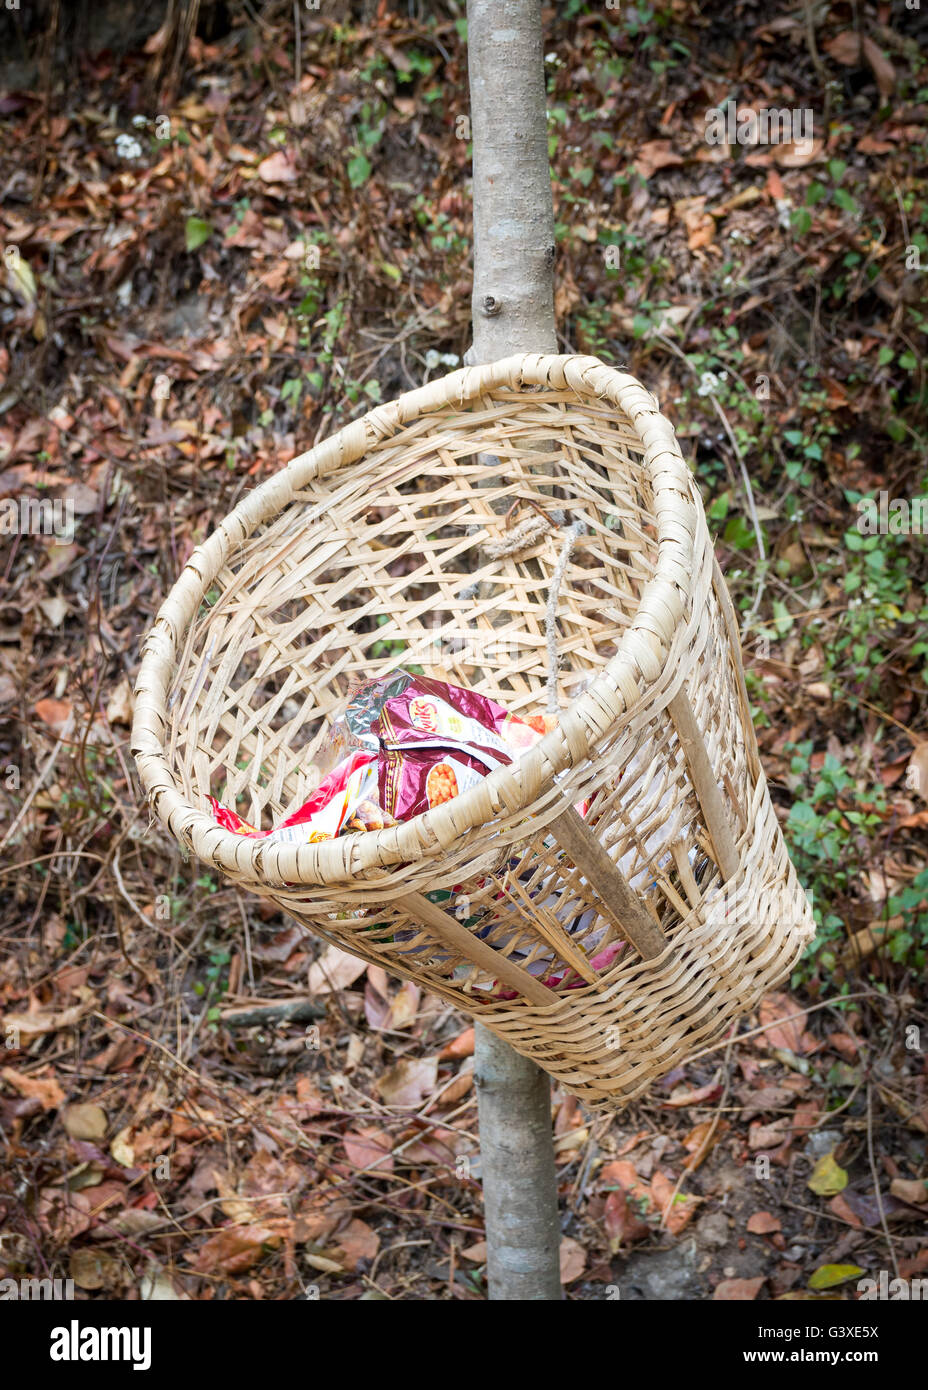 Unique handmande bamboo basket or dustbin placed on the streets of rural Nepalese Village. - Stock Image